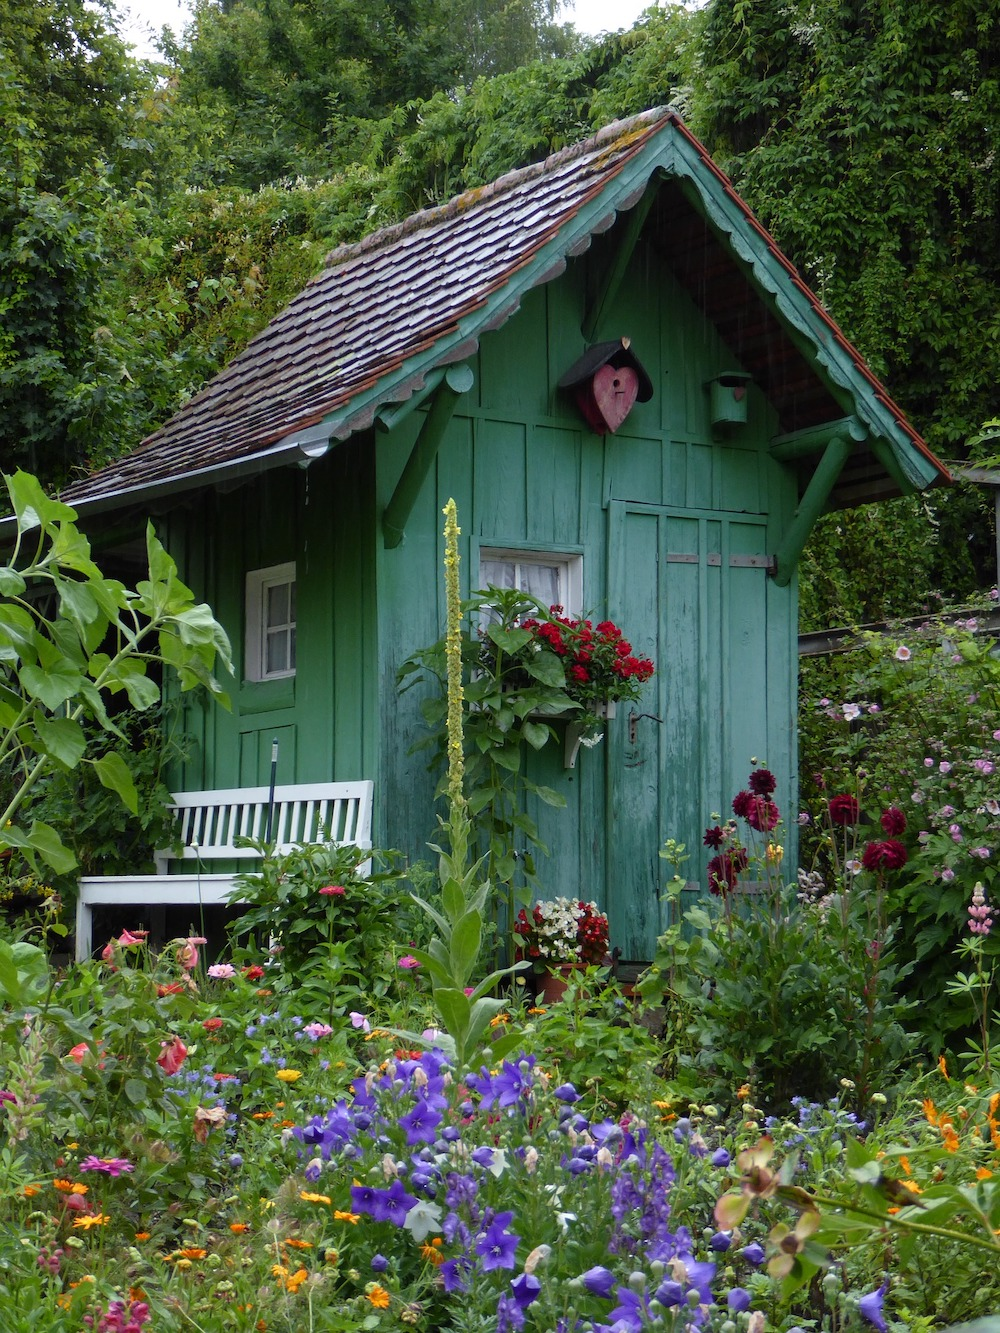 30 Money Saving Garden Tips for the Frugal Garden Green Garden Shed #SaveMoney #MoneySavingTips #SaveTime #GardenSavings #Garden #Gardening #Landscape #BudgetFriendly #FrugalLiving #FrugalGardening #ThriftyGardening